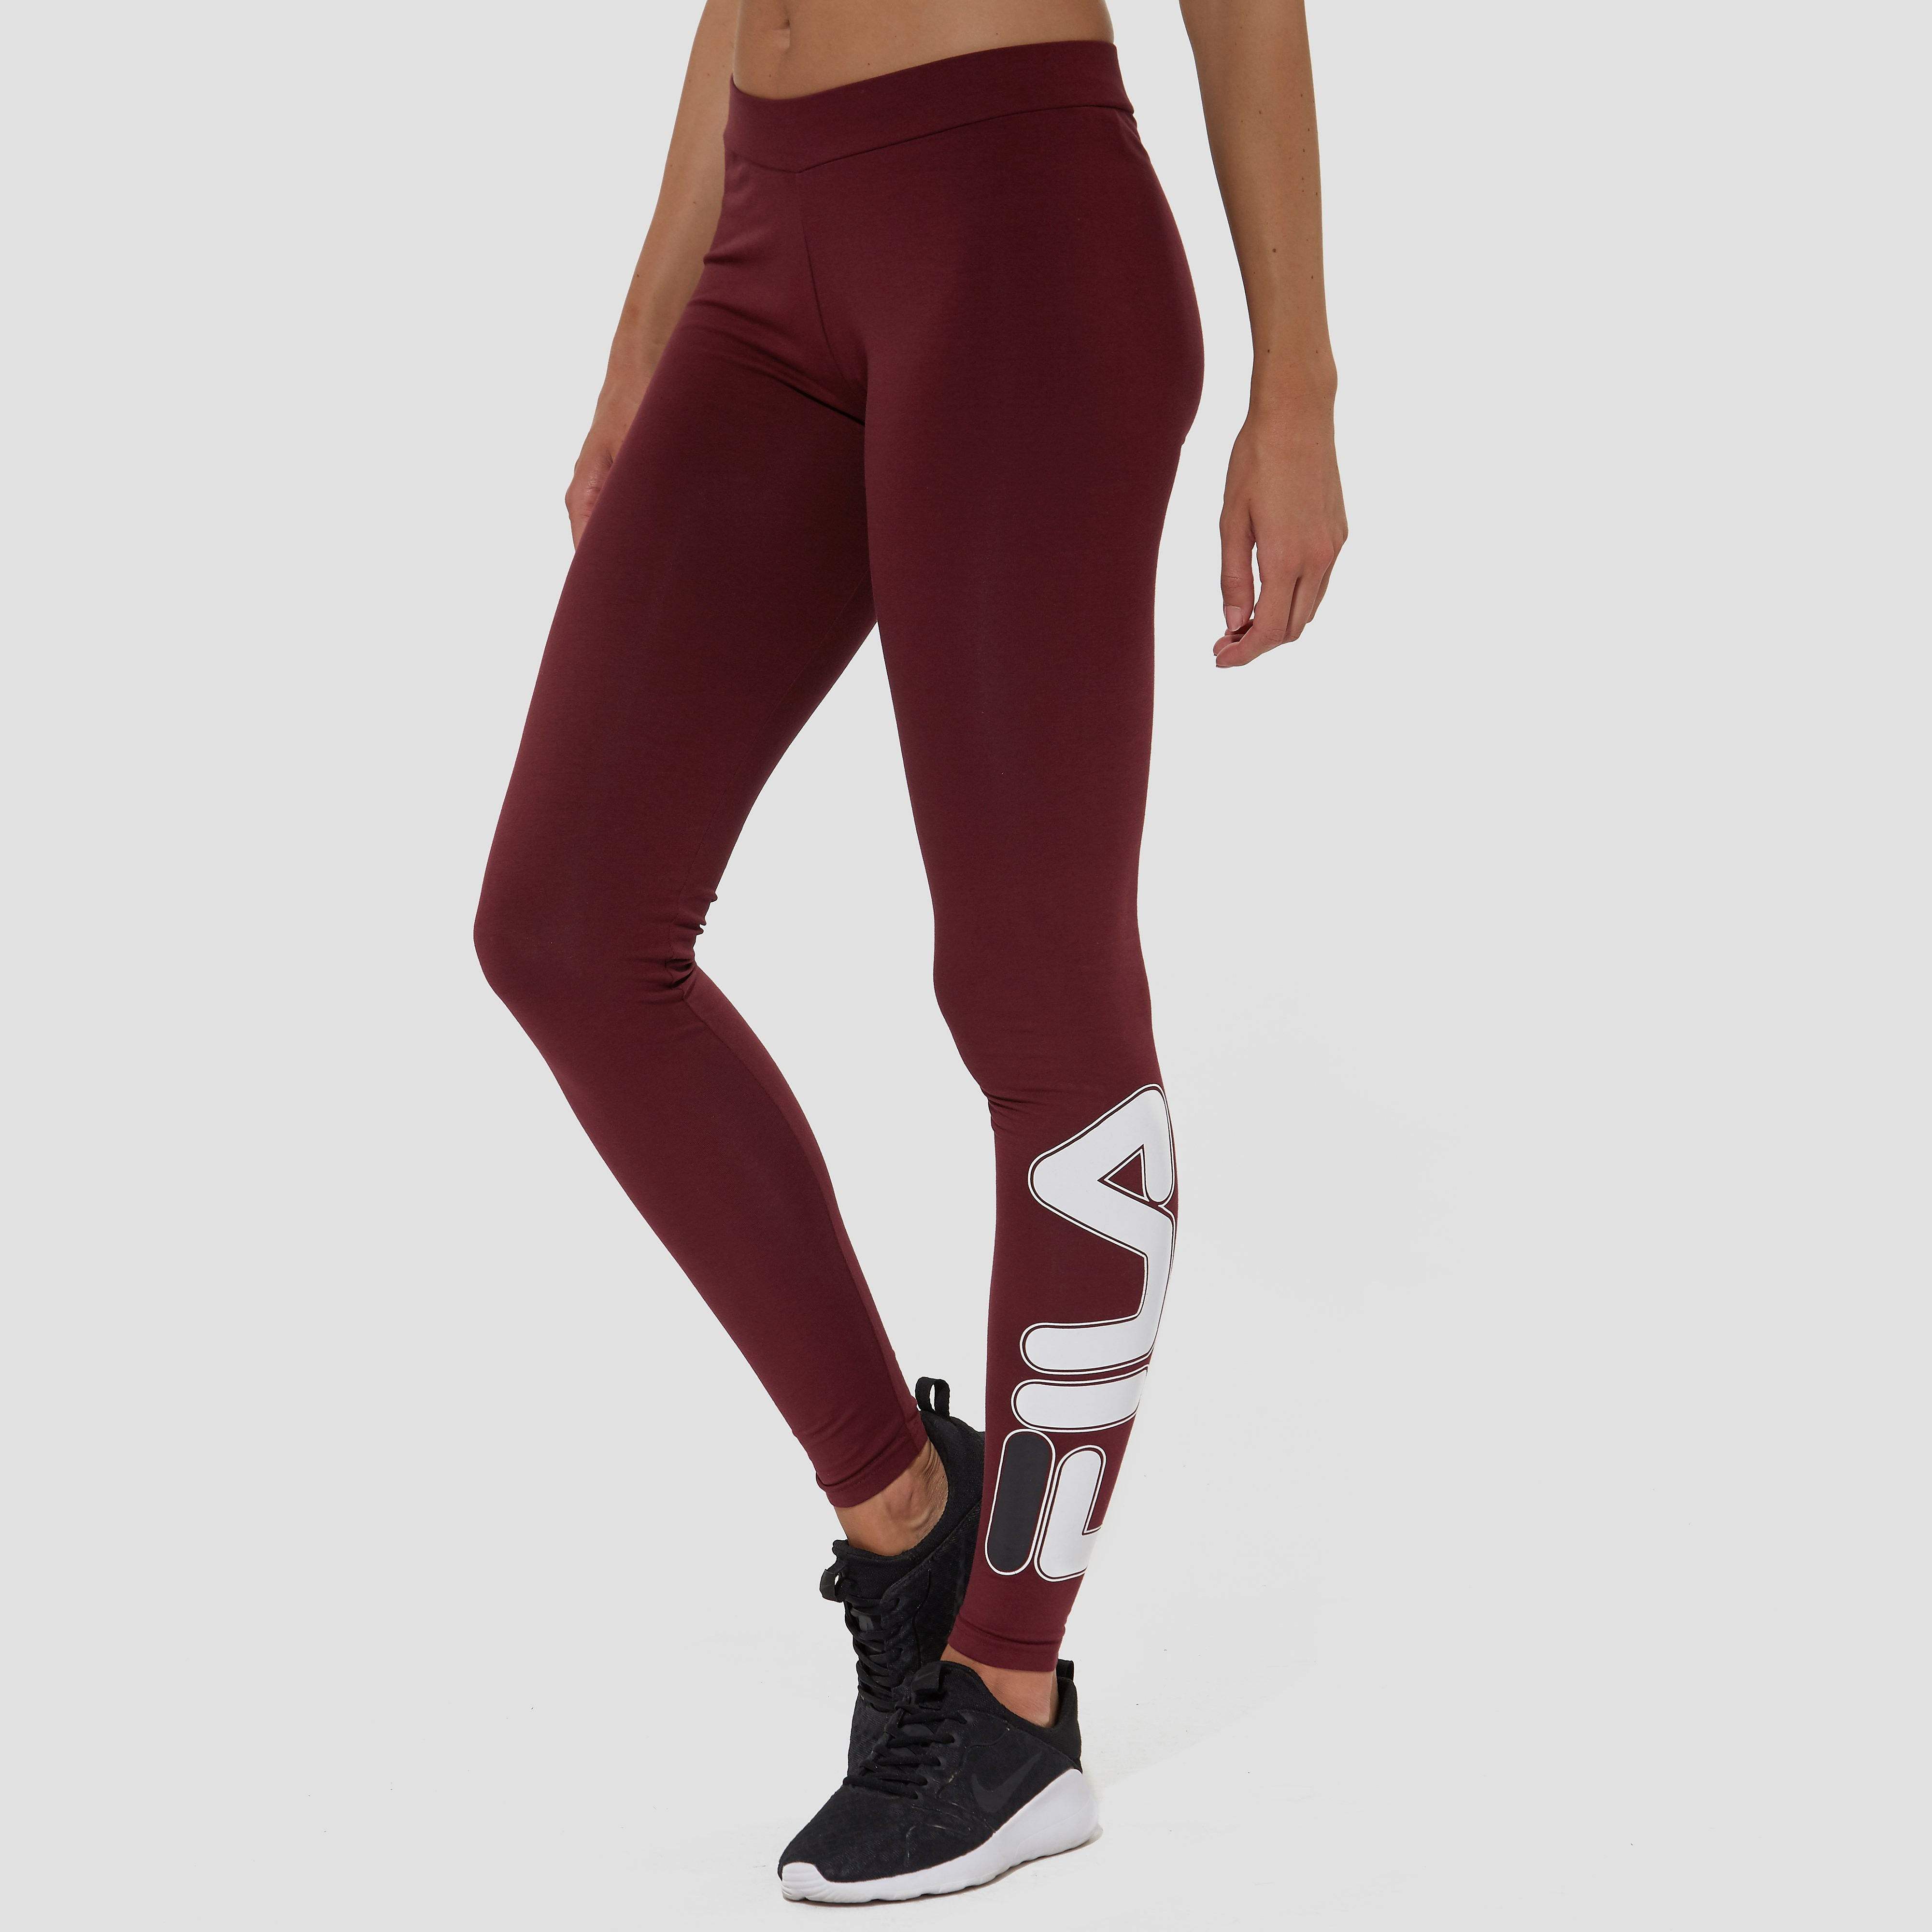 FILA MORELLO TIGHT BORDEAUX ROOD DAMES